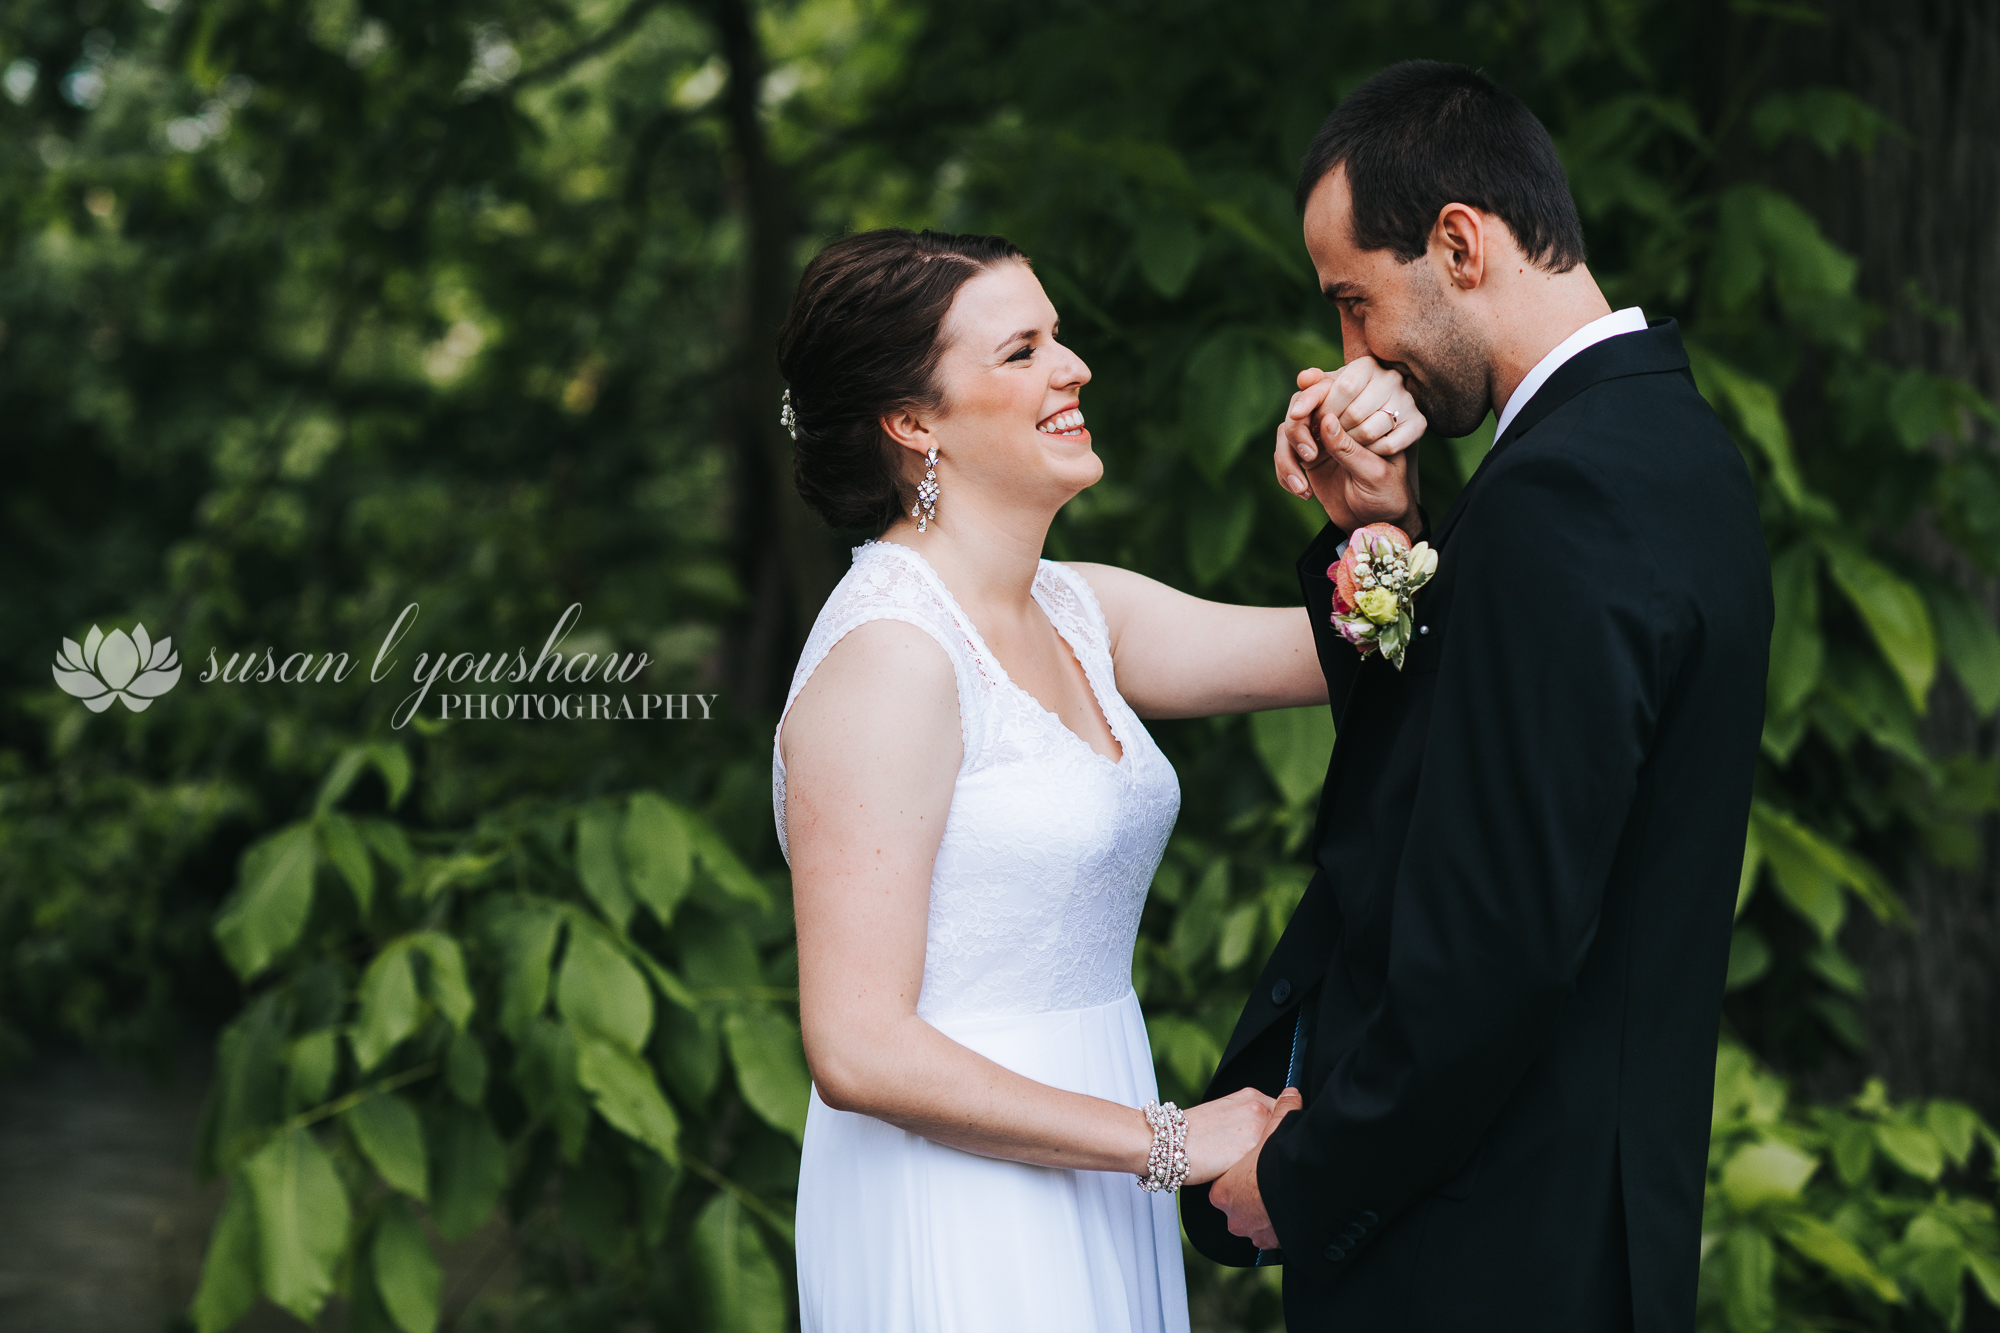 Adena and  Erik Wedding 05-17-2019 SLY Photography-33.jpg